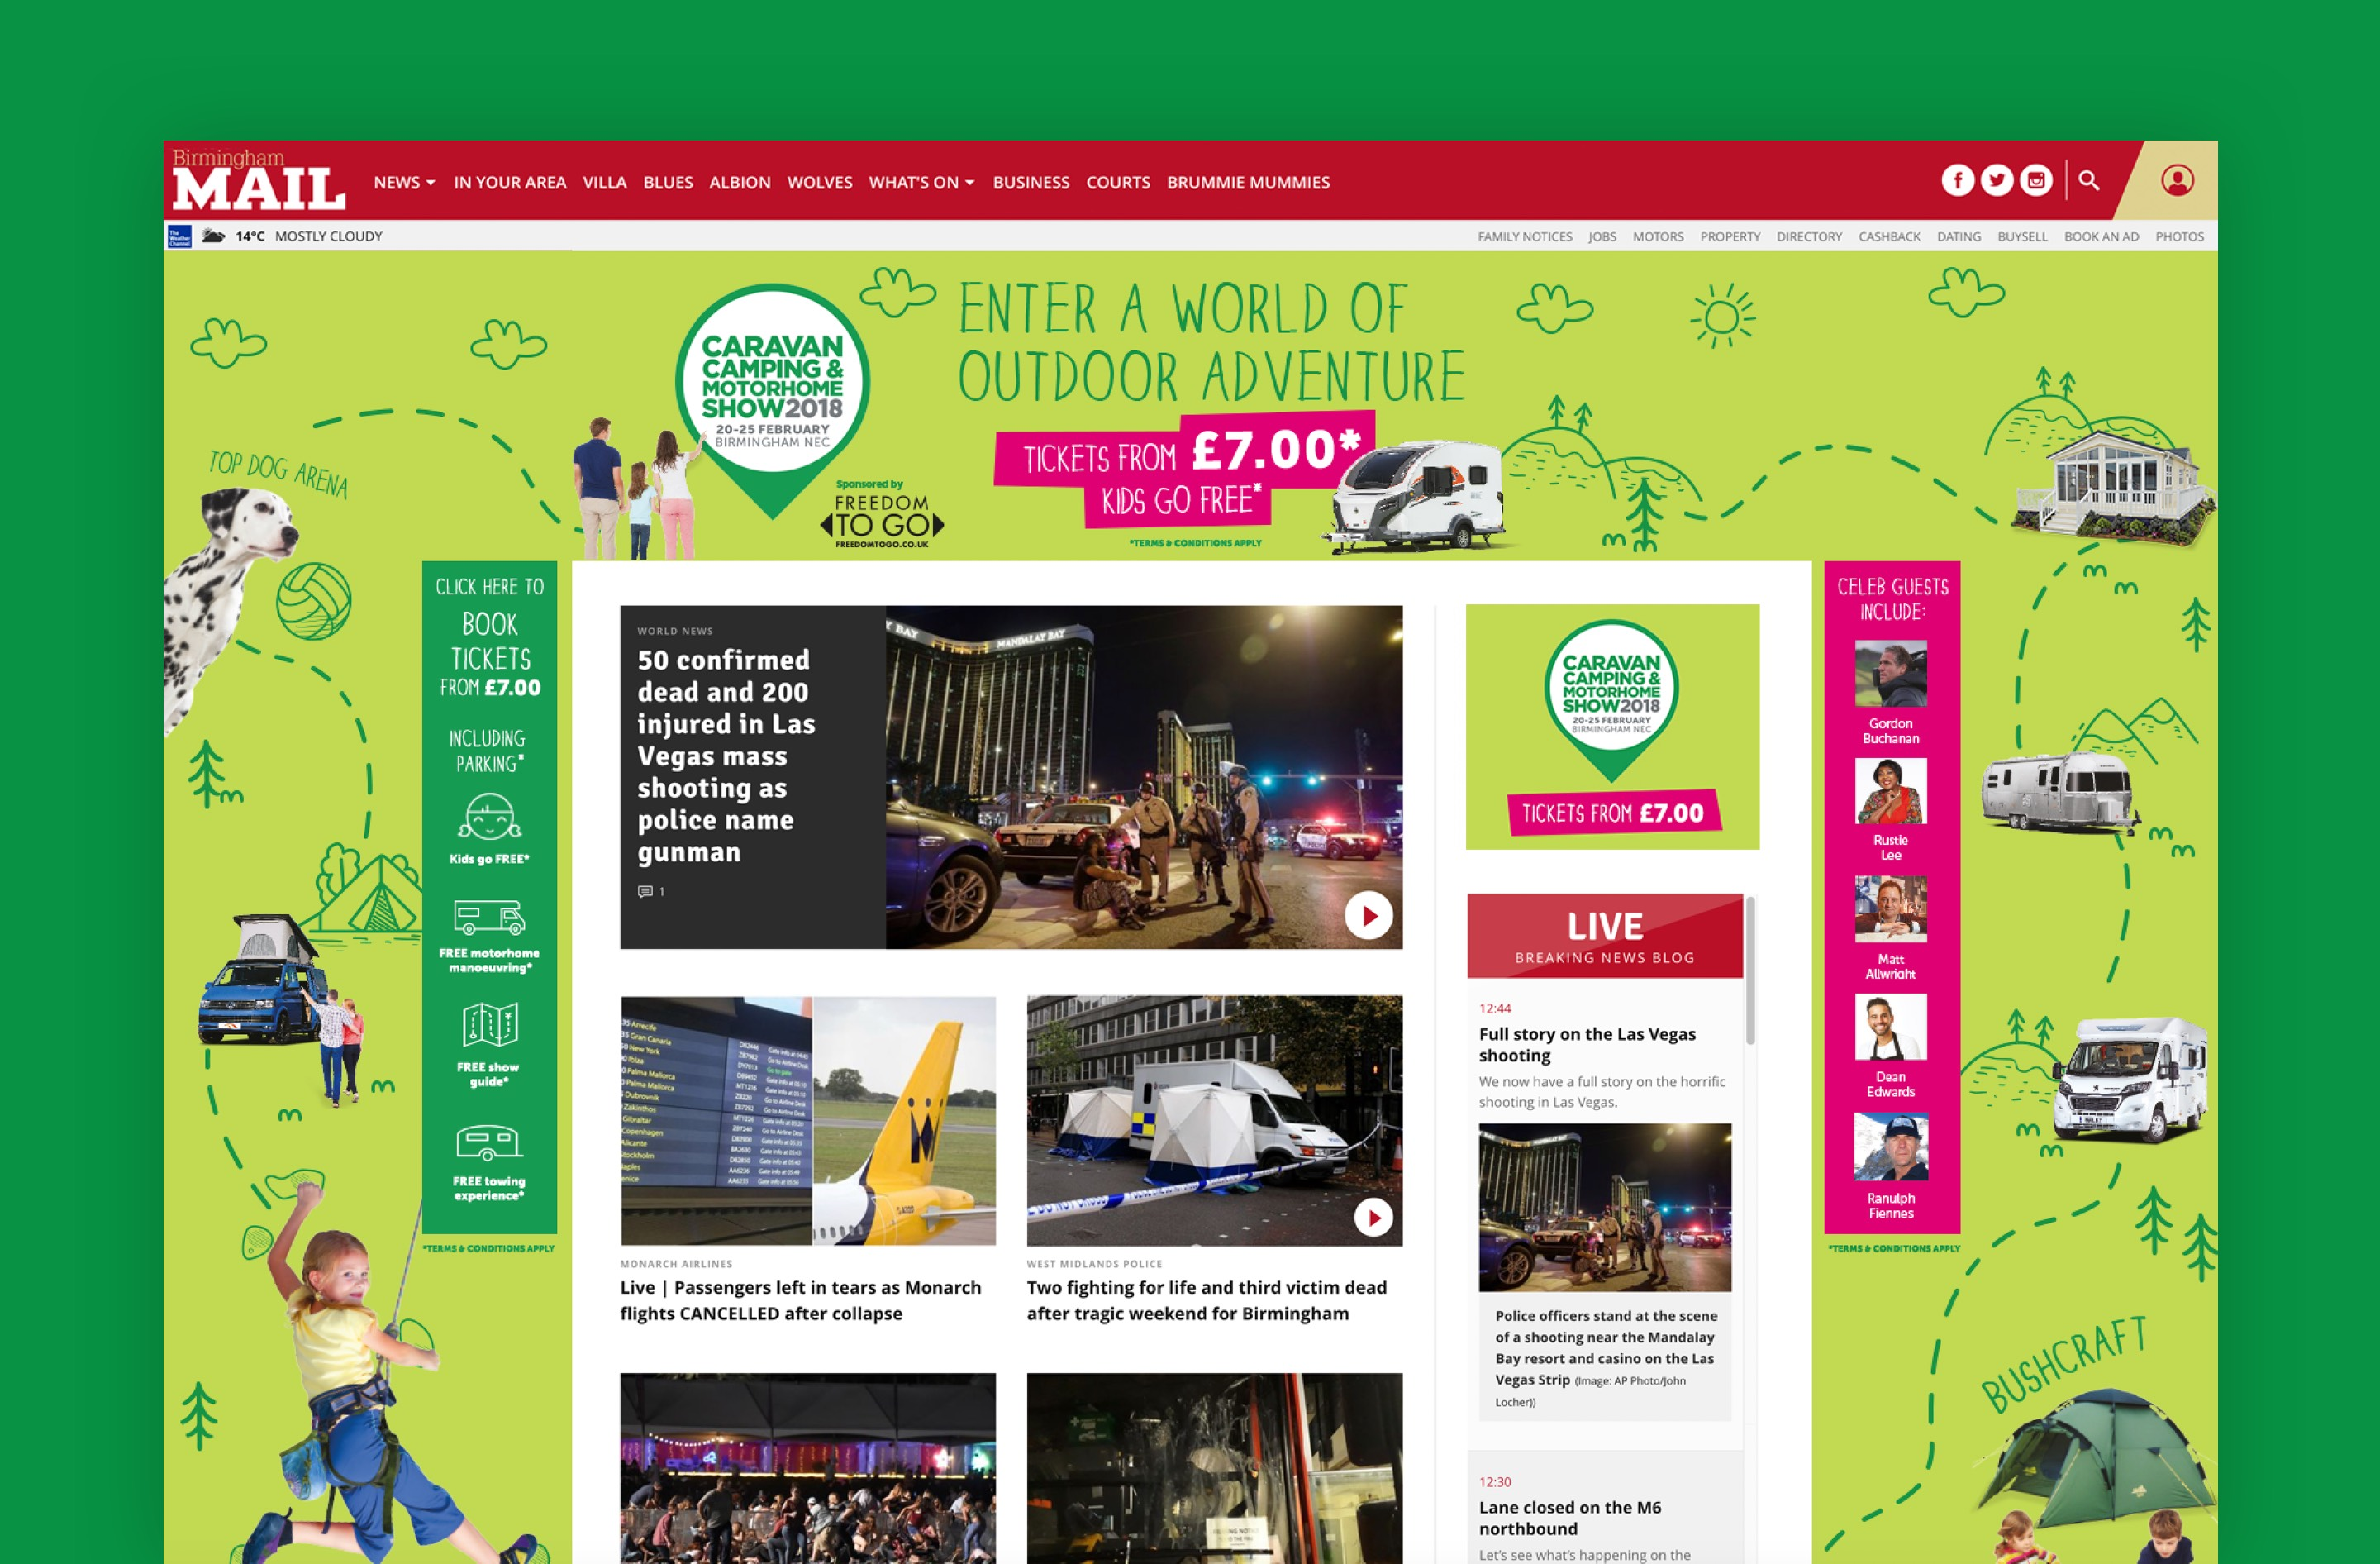 The event's branding design created eye-catching online display advertising